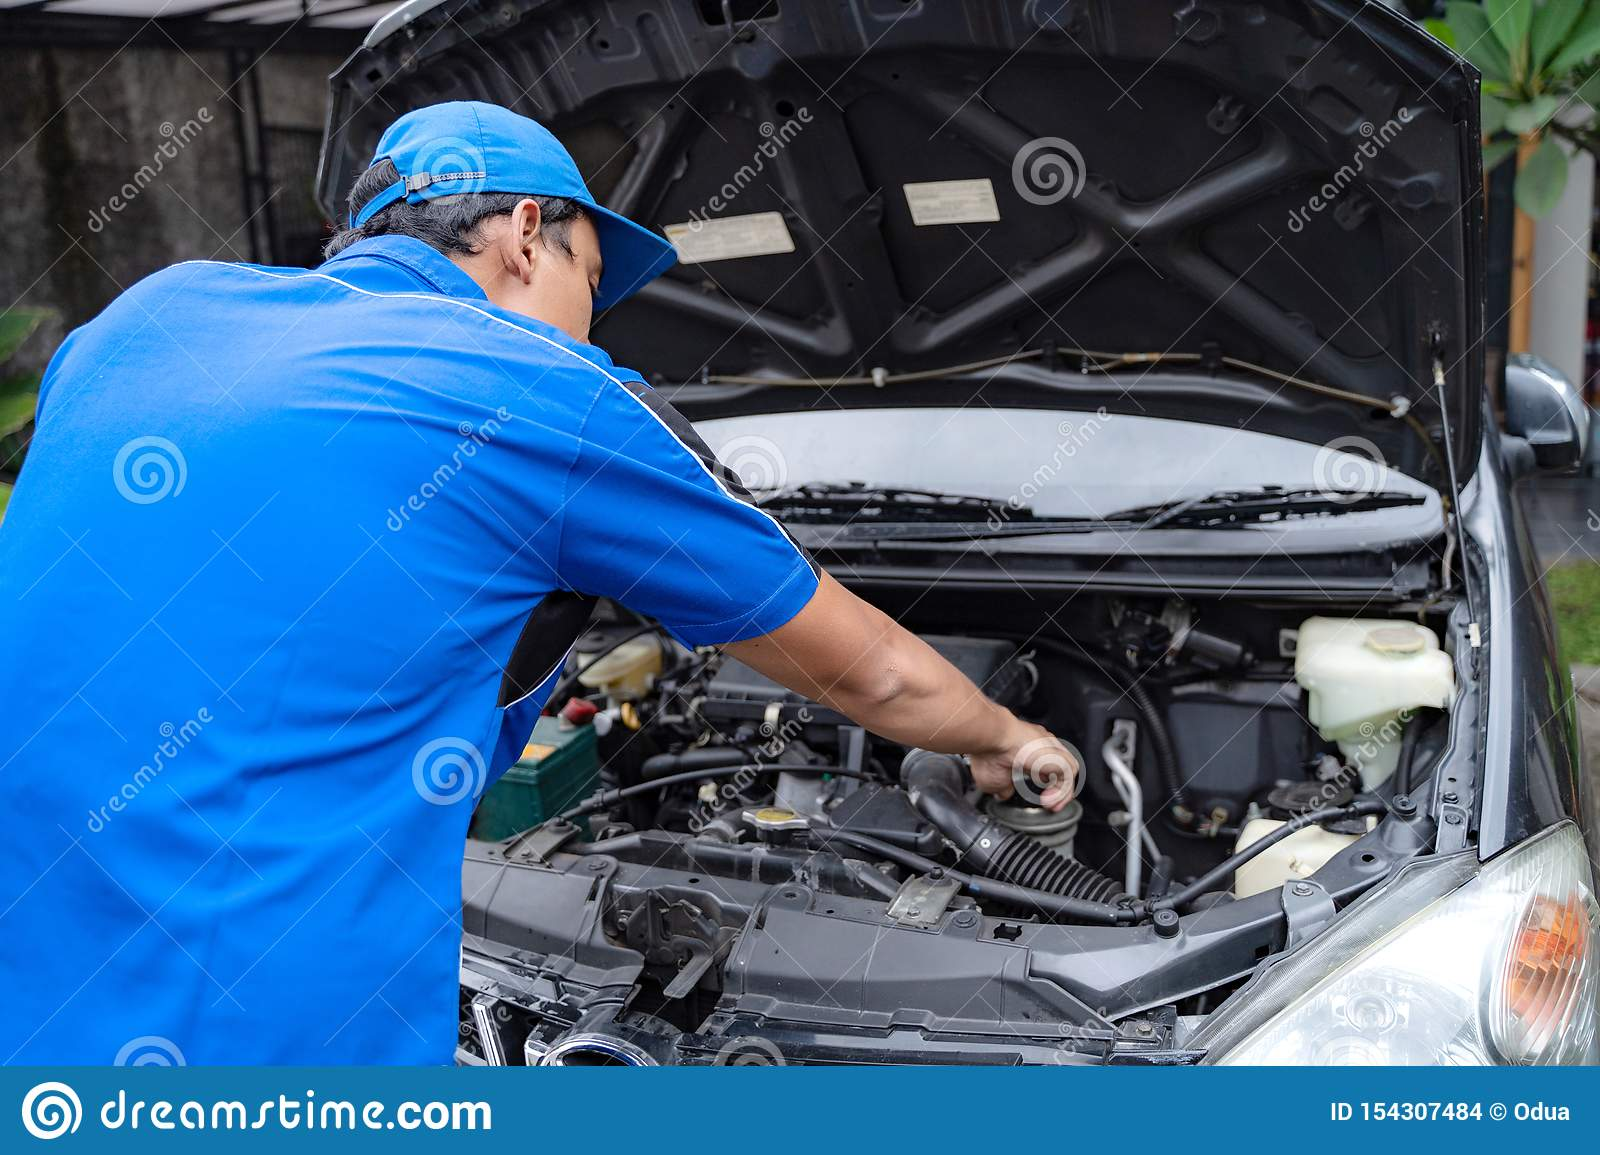 Mechanic Doing Some Inspection On Car S Engine Stock Photo Image Of Inspecting Coveralls 154307484